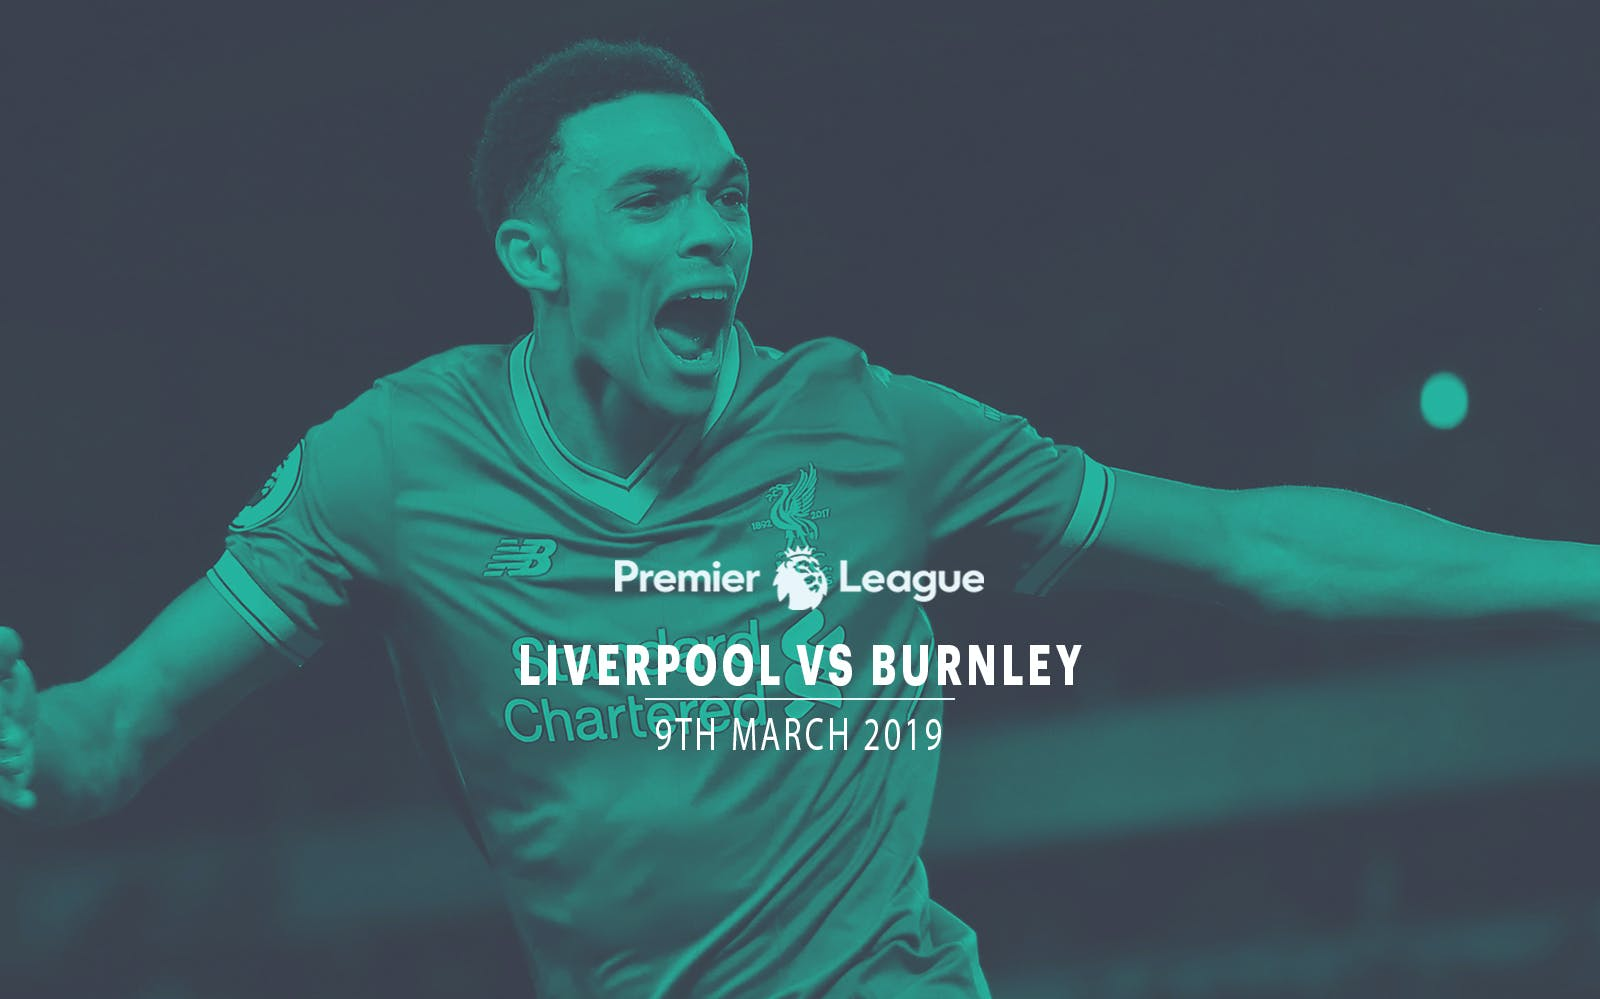 liverpool vs burnley - 9th mar'19-1